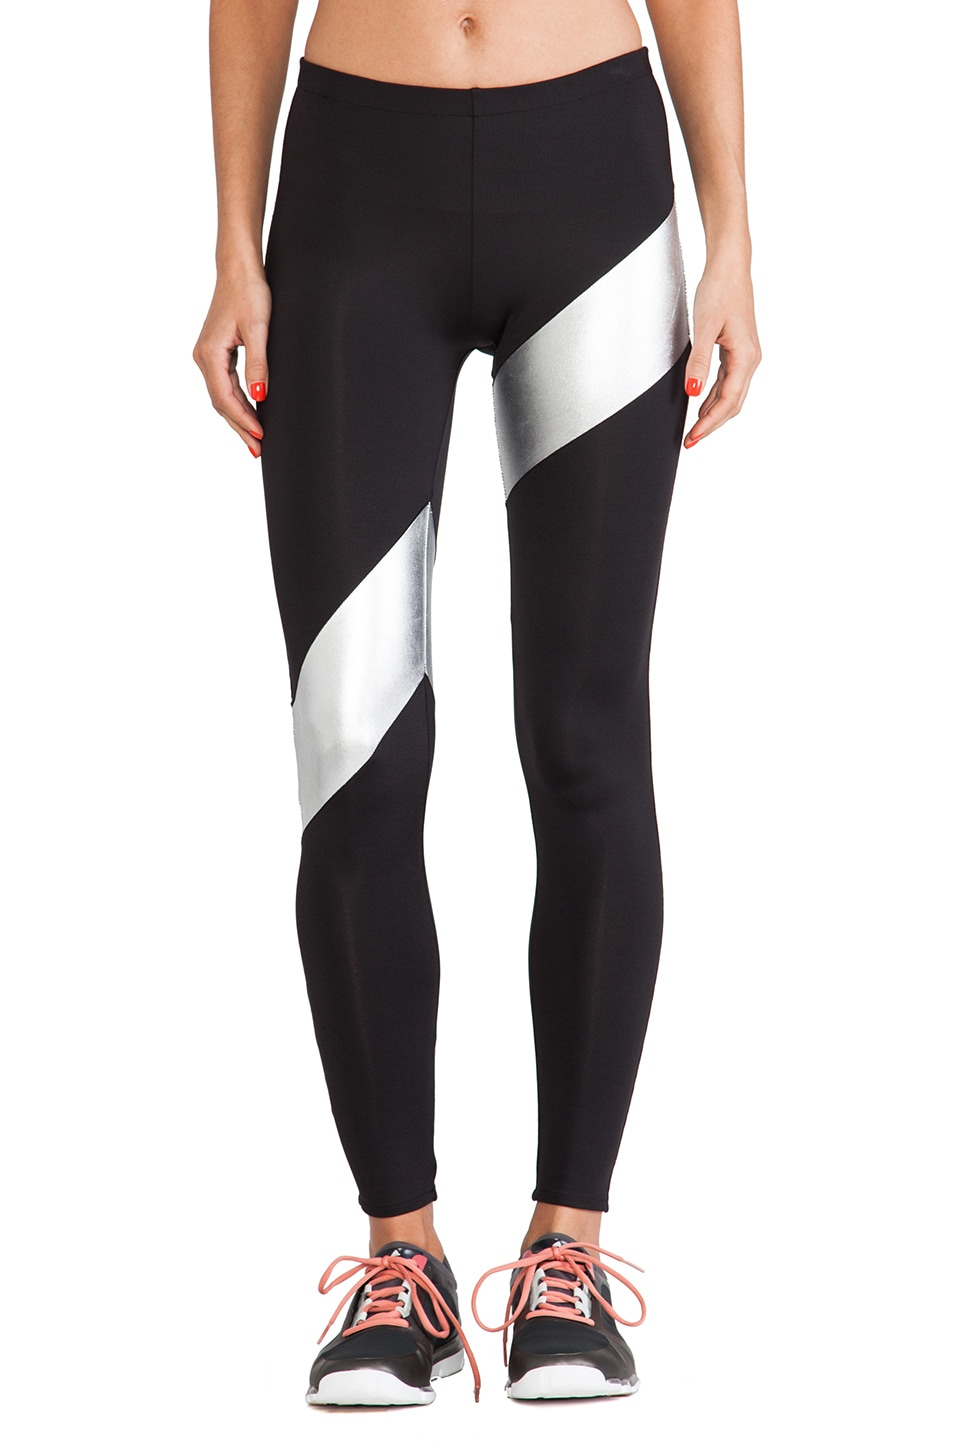 Norma Kamali Spliced Diagonal Legging in Black & Silver Foil